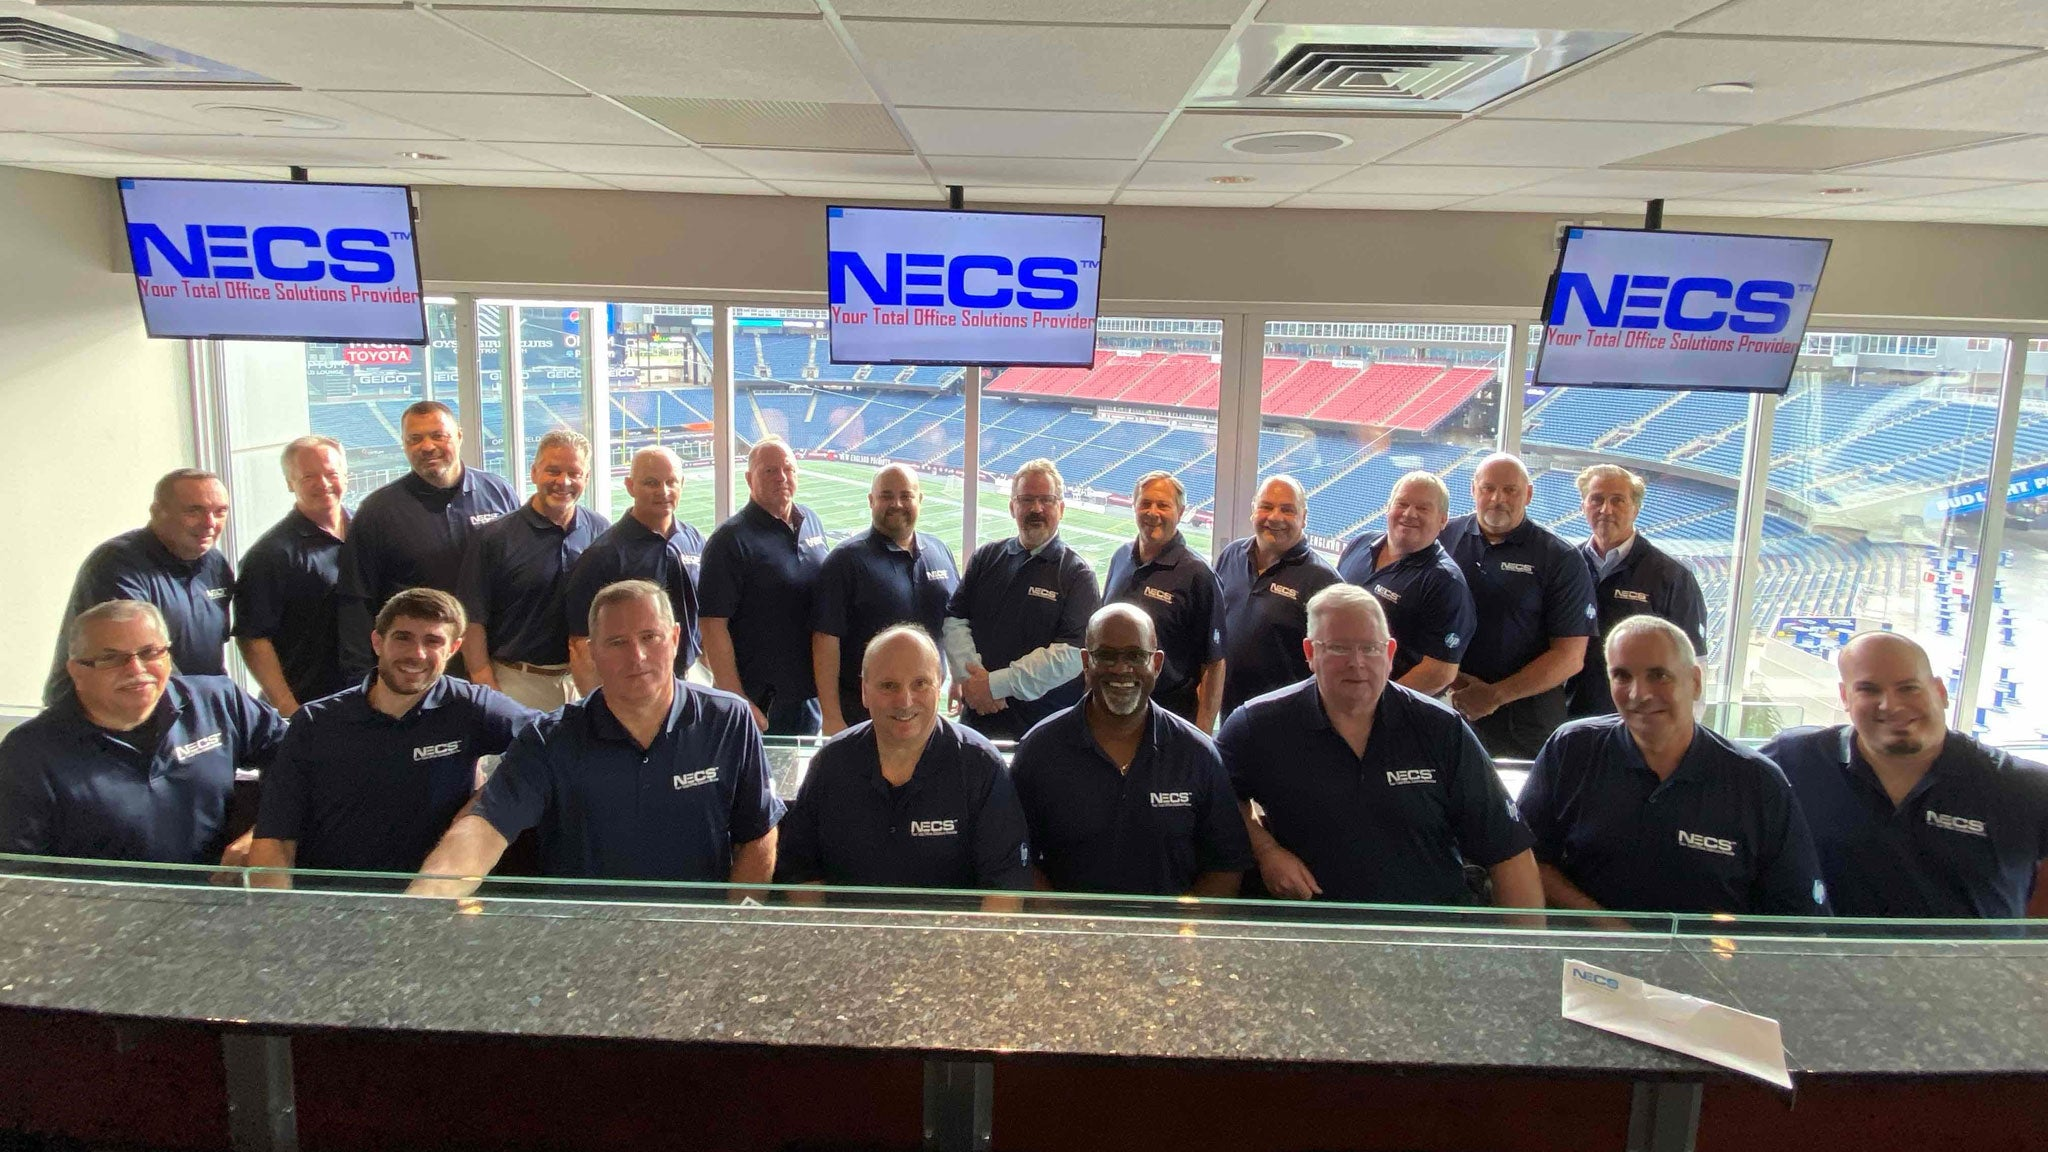 NECS Team at the Gillette Stadium for an Hp Conference